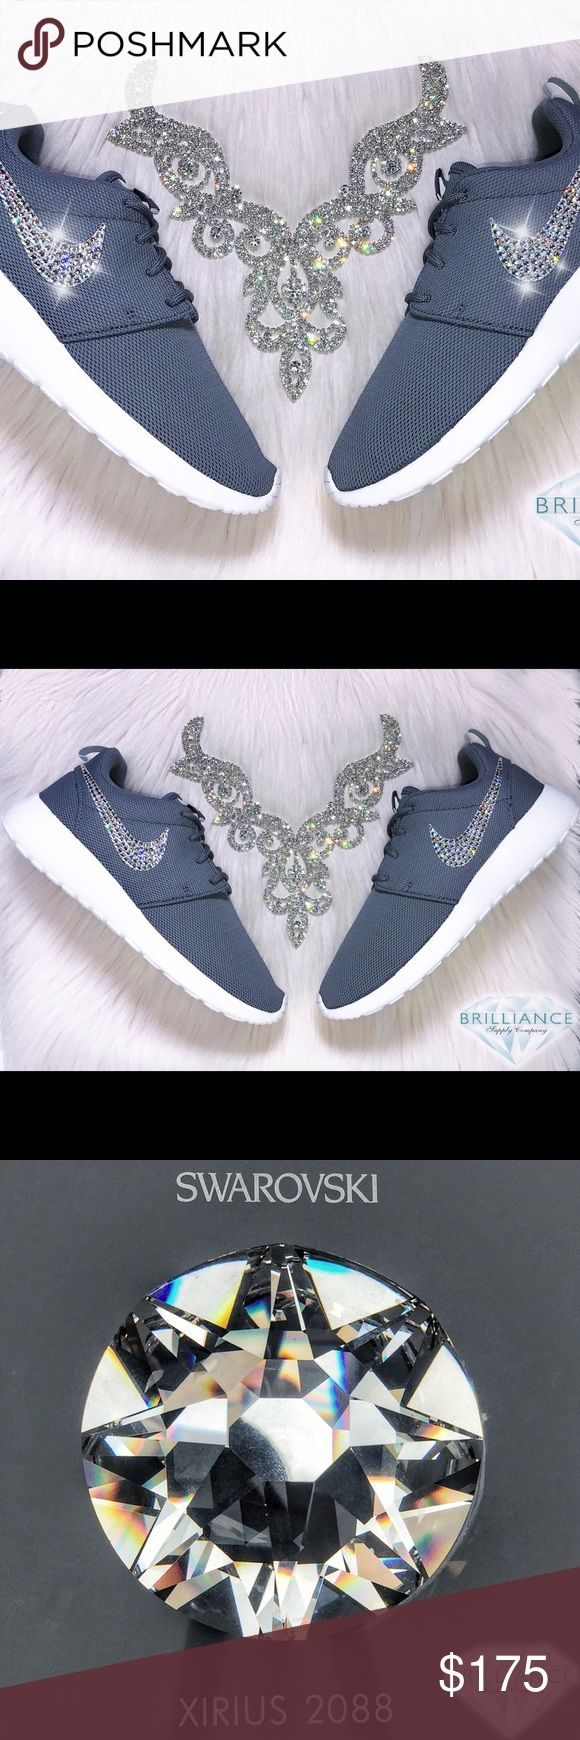 Swarovski Nike Roshe One Grey - Bling Nike Shoes Authentic New Women's Nike Roshe One Shoes in Cool Grey!  Outer Logos Are Customized With HUNDREDS Of The Most Expensive SWAROVSKI® Crystals In The World- In ALL Different Sizes. Our Crystals Feature X-Cut Technology For Diamond-Like Brilliance And Shine.  Brand new in original box, purchased directly from an authorized Nike retailer.  Crystals have been applied with industrial strength glue. Will never come off.   For better pricing and more…